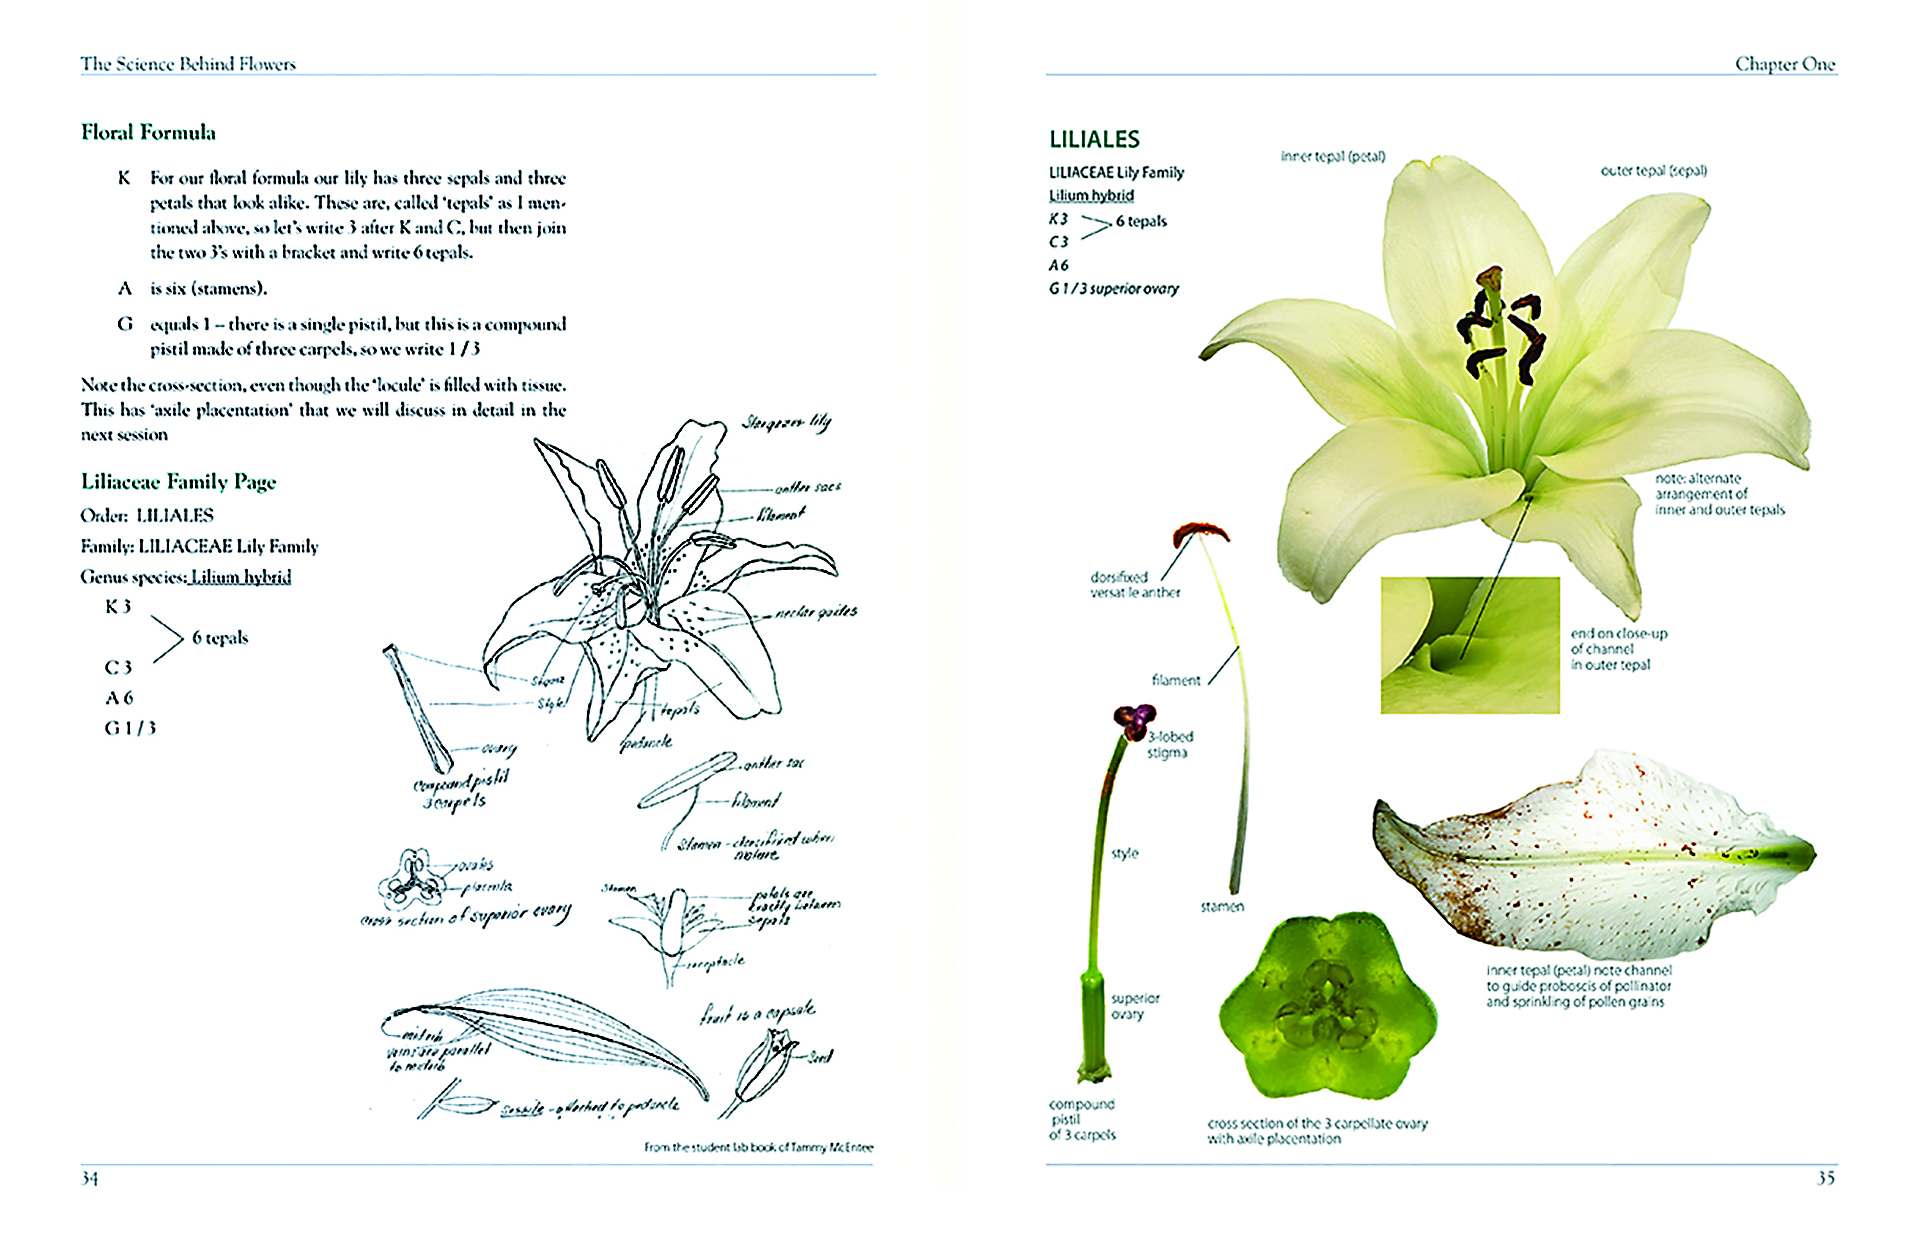 The Sci Behind Flowers_D Rauh_Lily